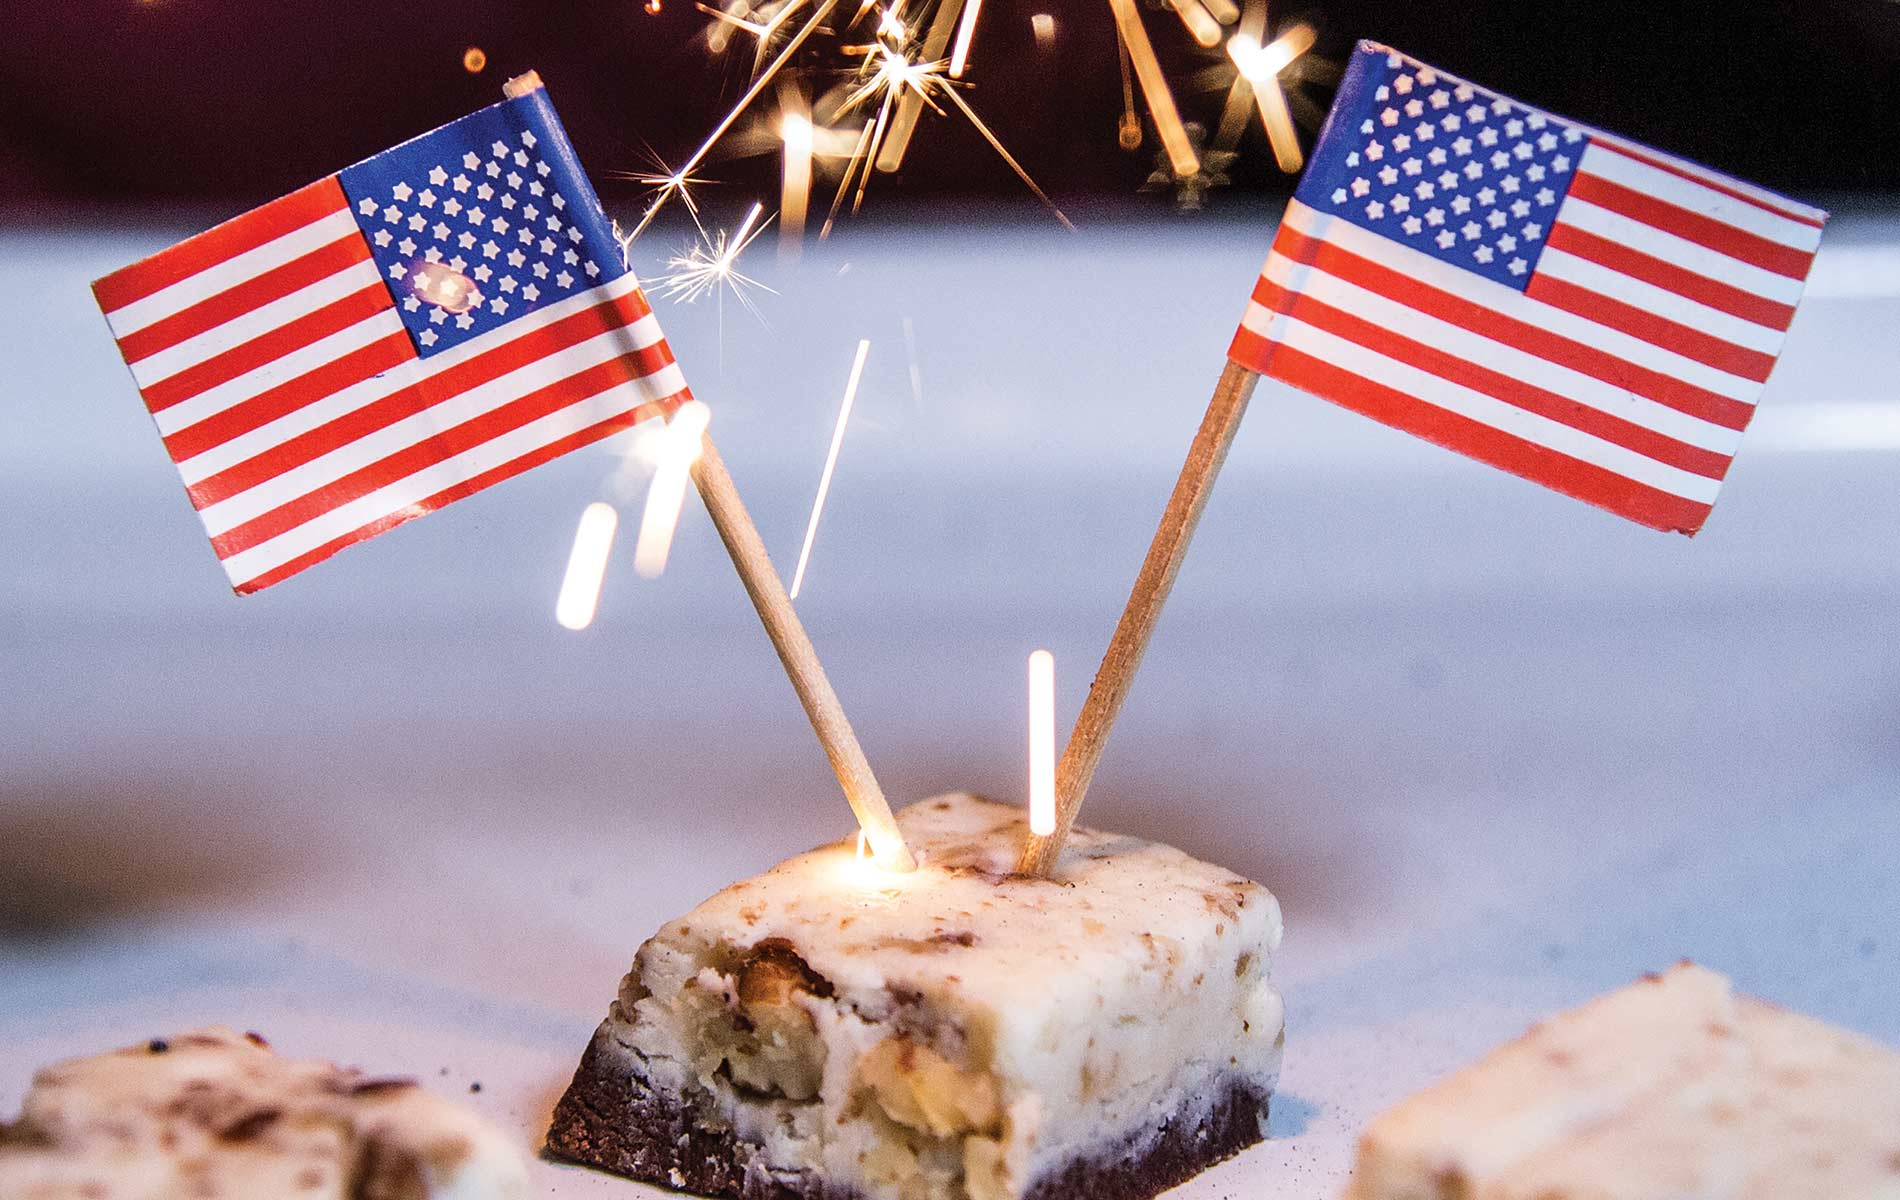 Cookies And Cream EOD Fudge With Two Mirrored American Flags And A Sparkler Background